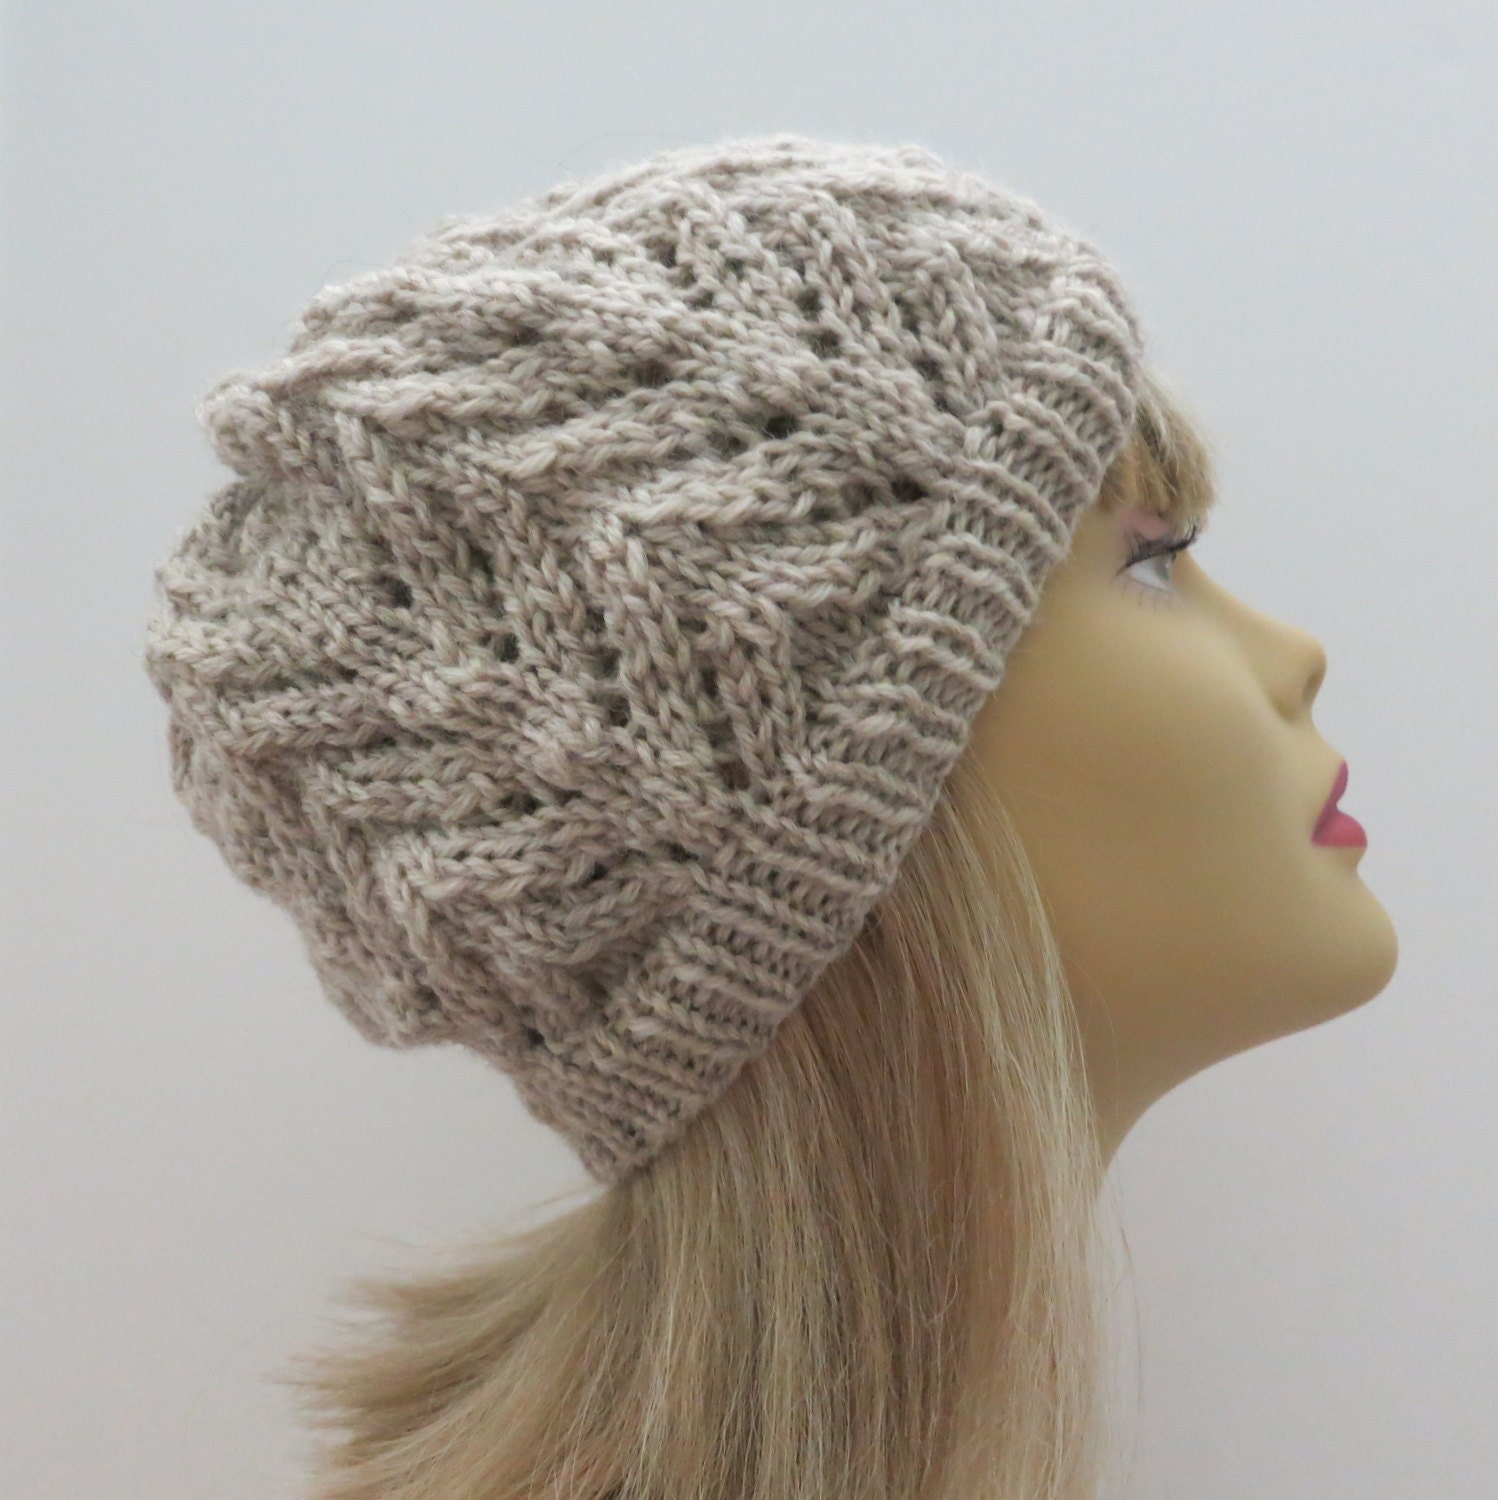 Knitting Patterns For Winter Hats : Winter Hat, Hat Pattern, Knitting Pattern from ...